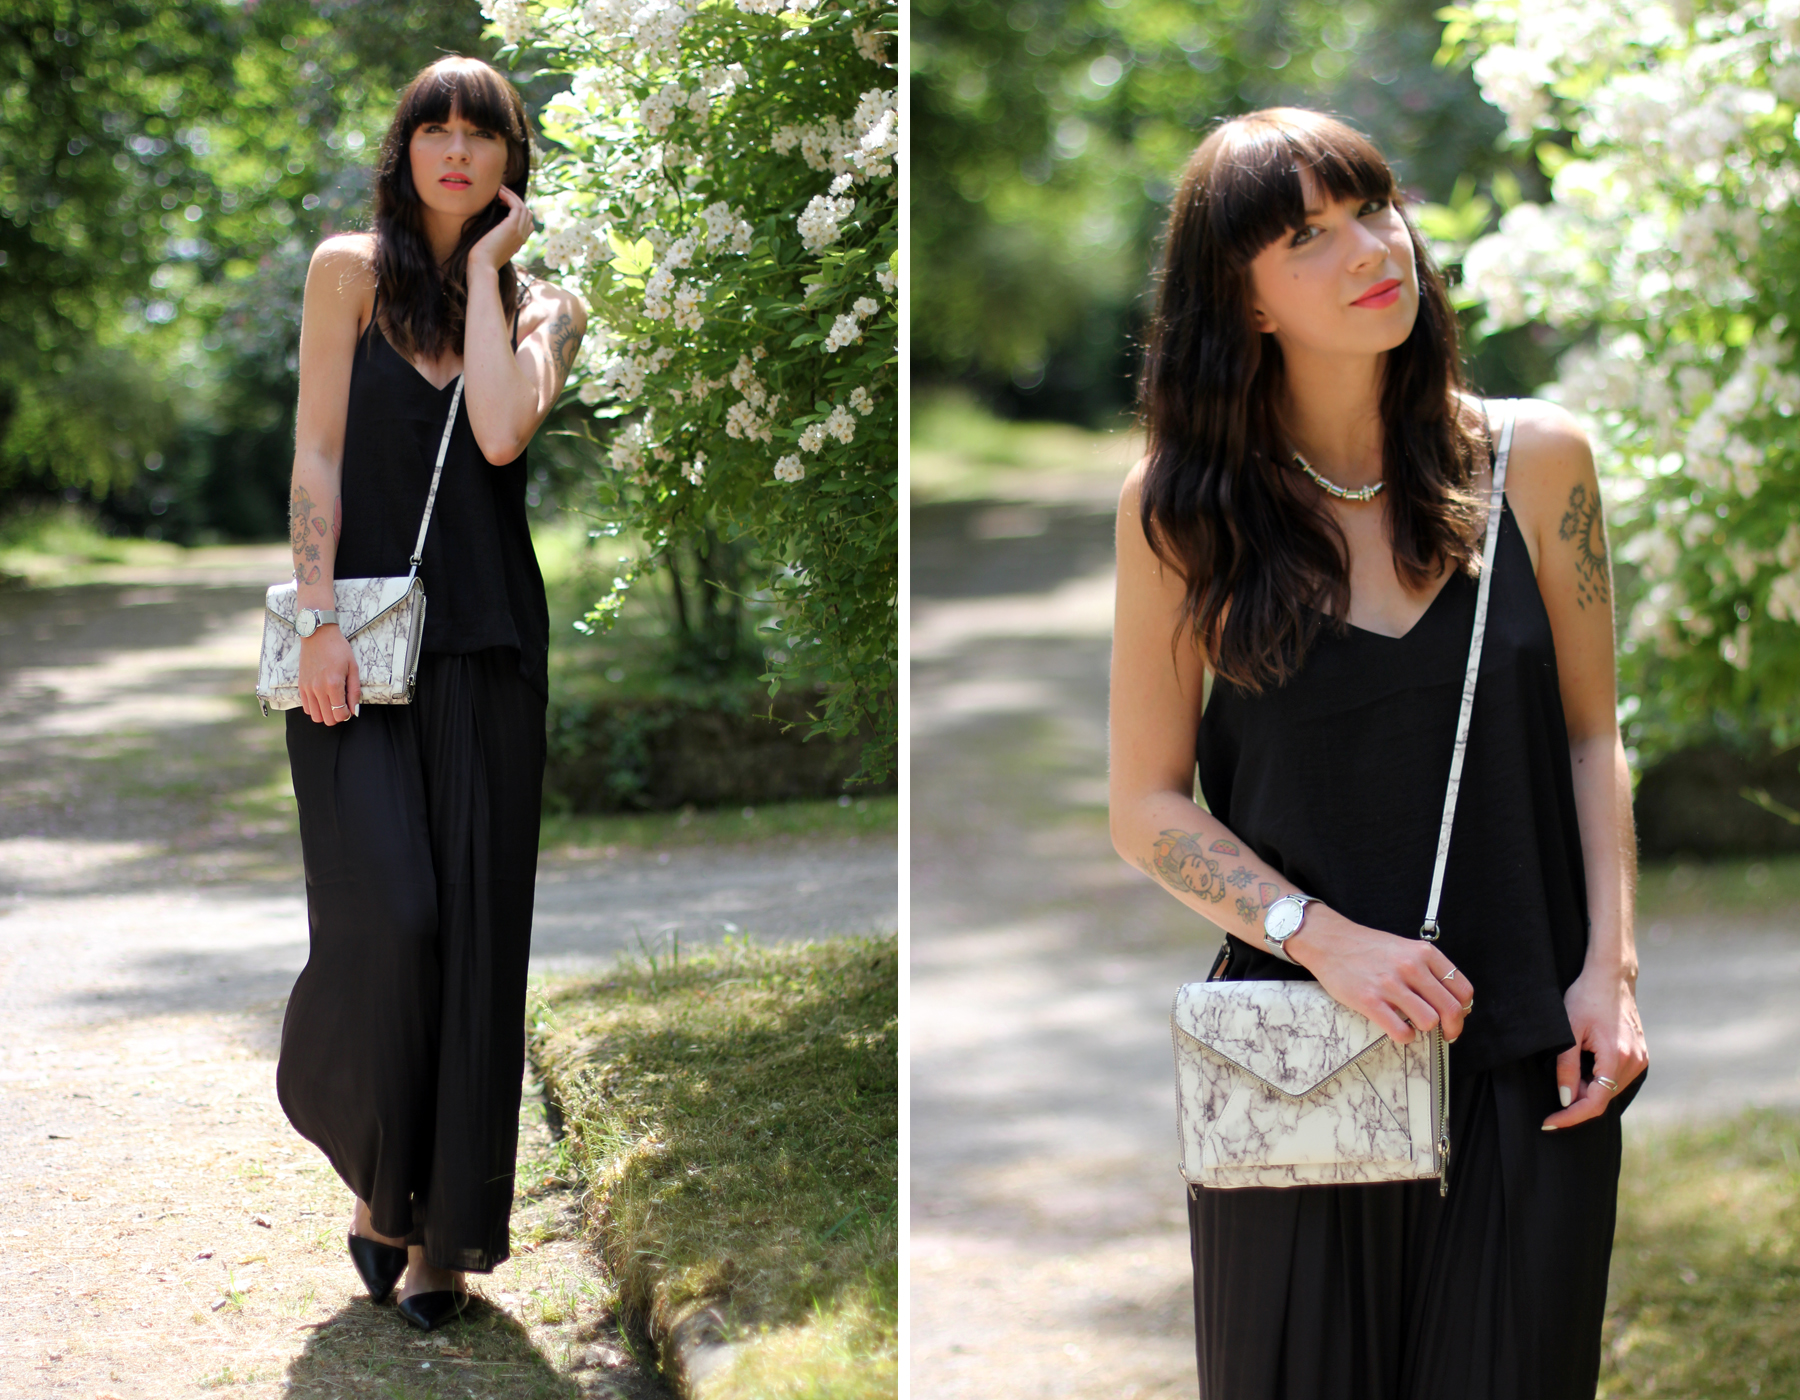 black outfit summer marble bag cute rebecca minkoff shopbop cute roses fashion blogger berlin düsseldorf ricarda schernus cats & dogs blog 1